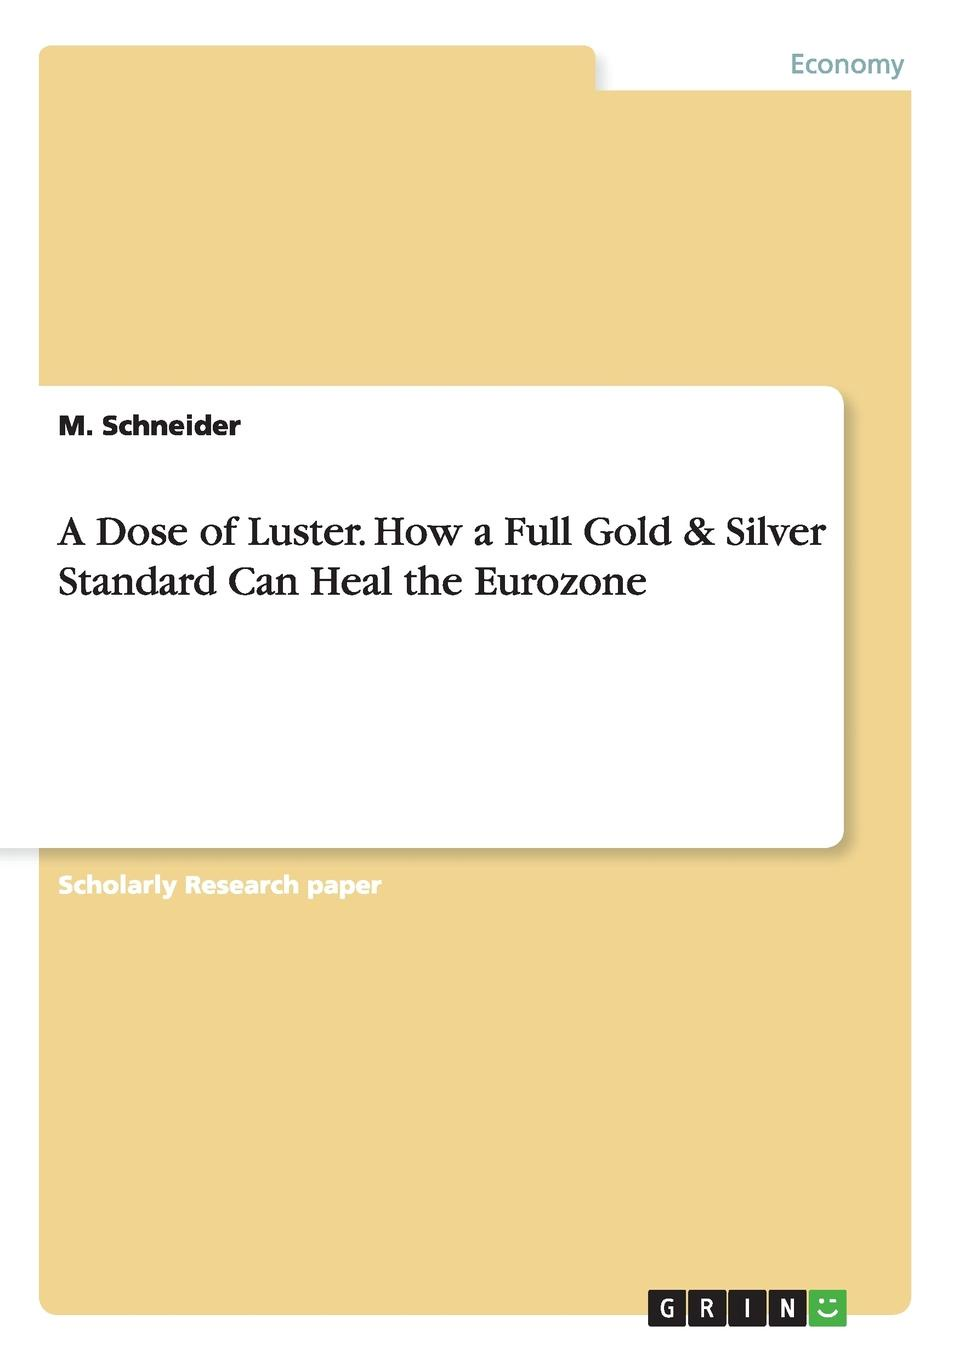 M. Schneider A Dose of Luster. How a Full Gold . Silver Standard Can Heal the Eurozone yinghua jin is fiscal decentralization good for economic growth